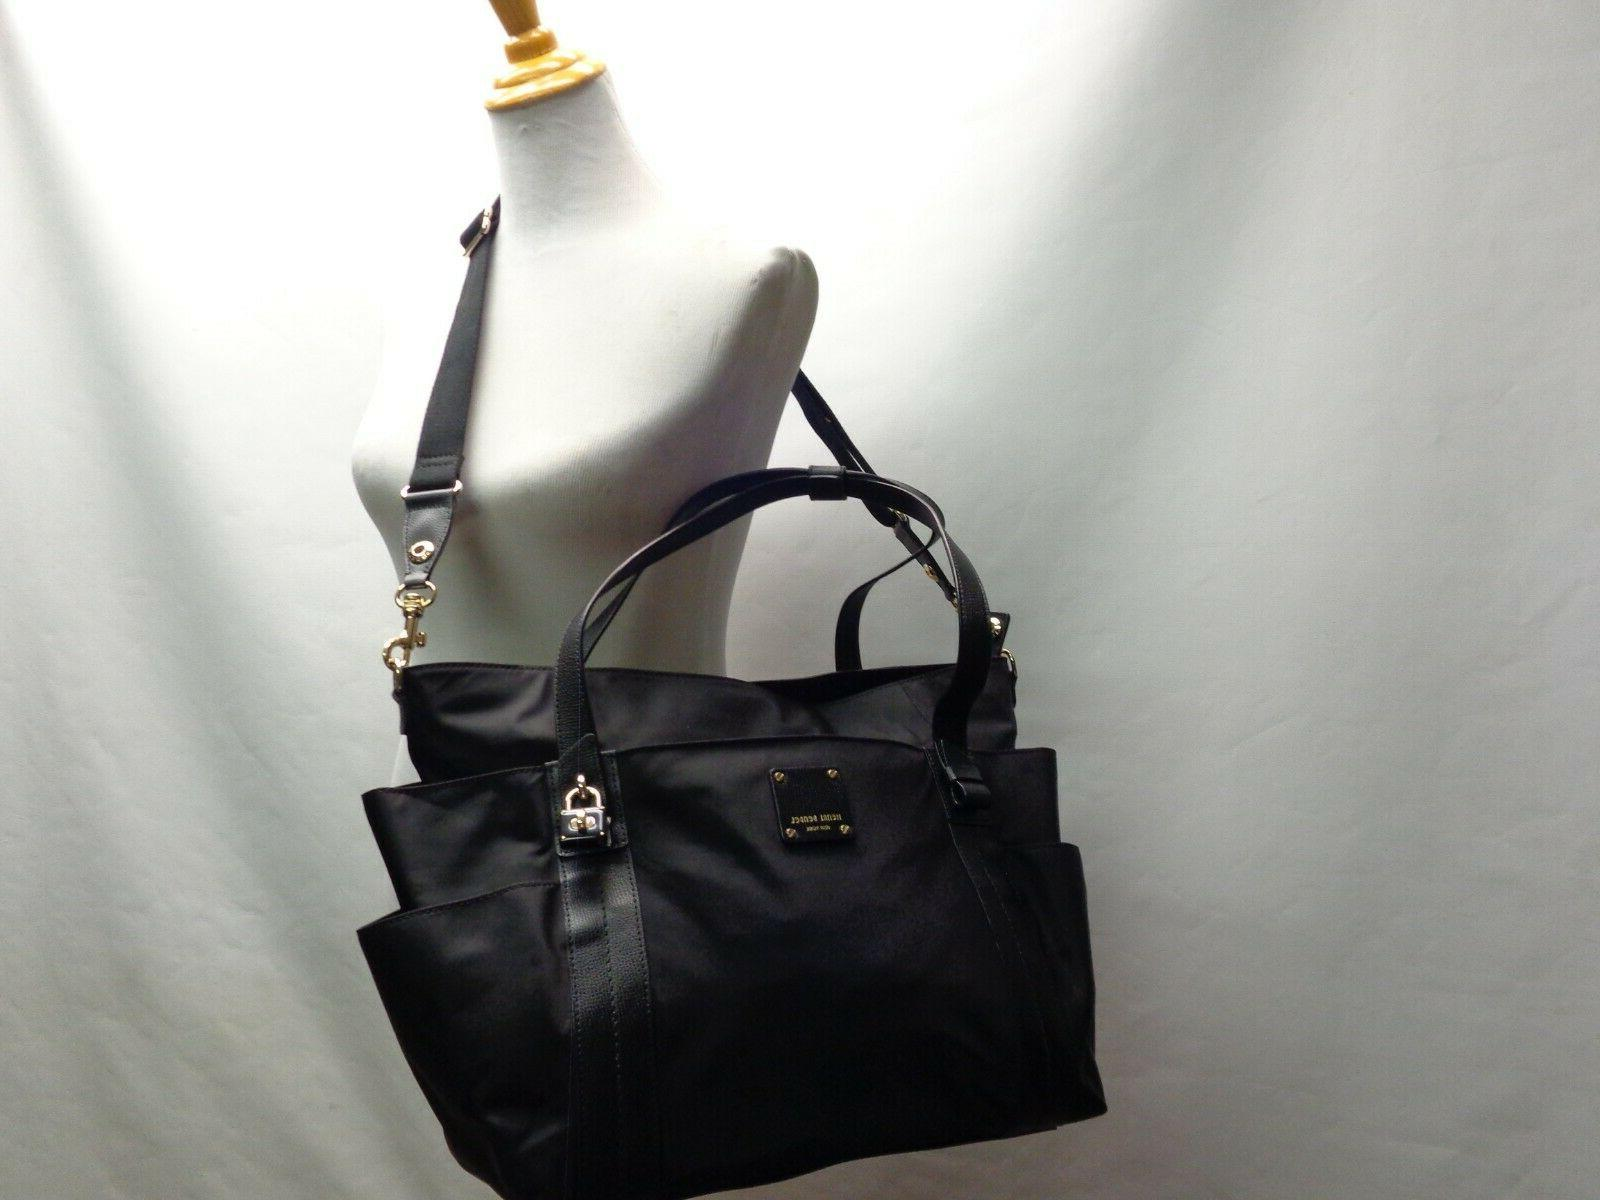 nwot xl tote diaper shoulder bag black